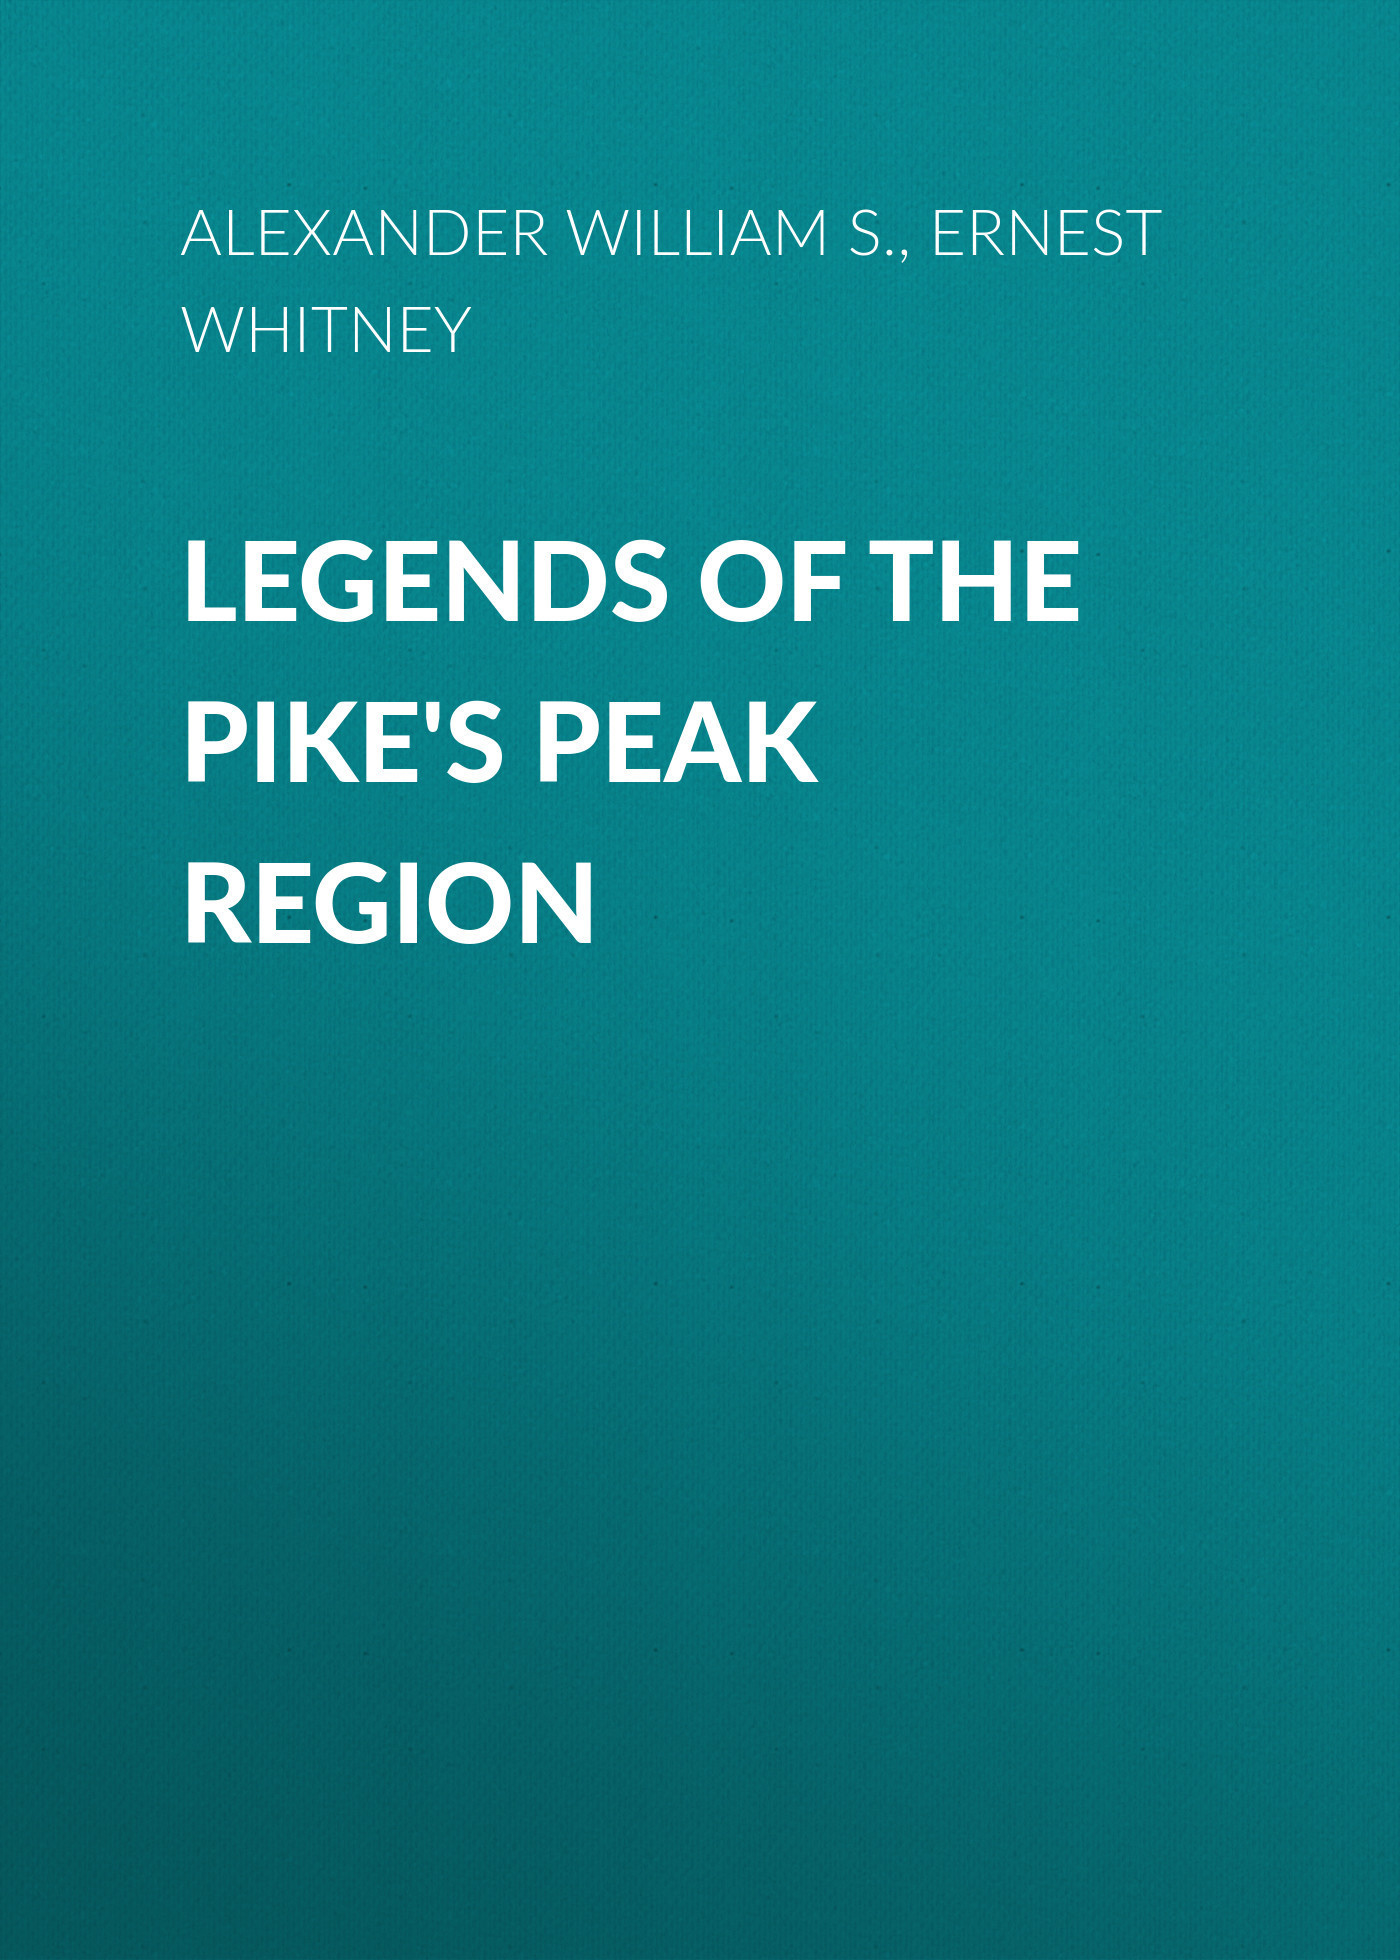 Alexander William S. Legends of the Pike's Peak Region neuralgias of the orofacial region